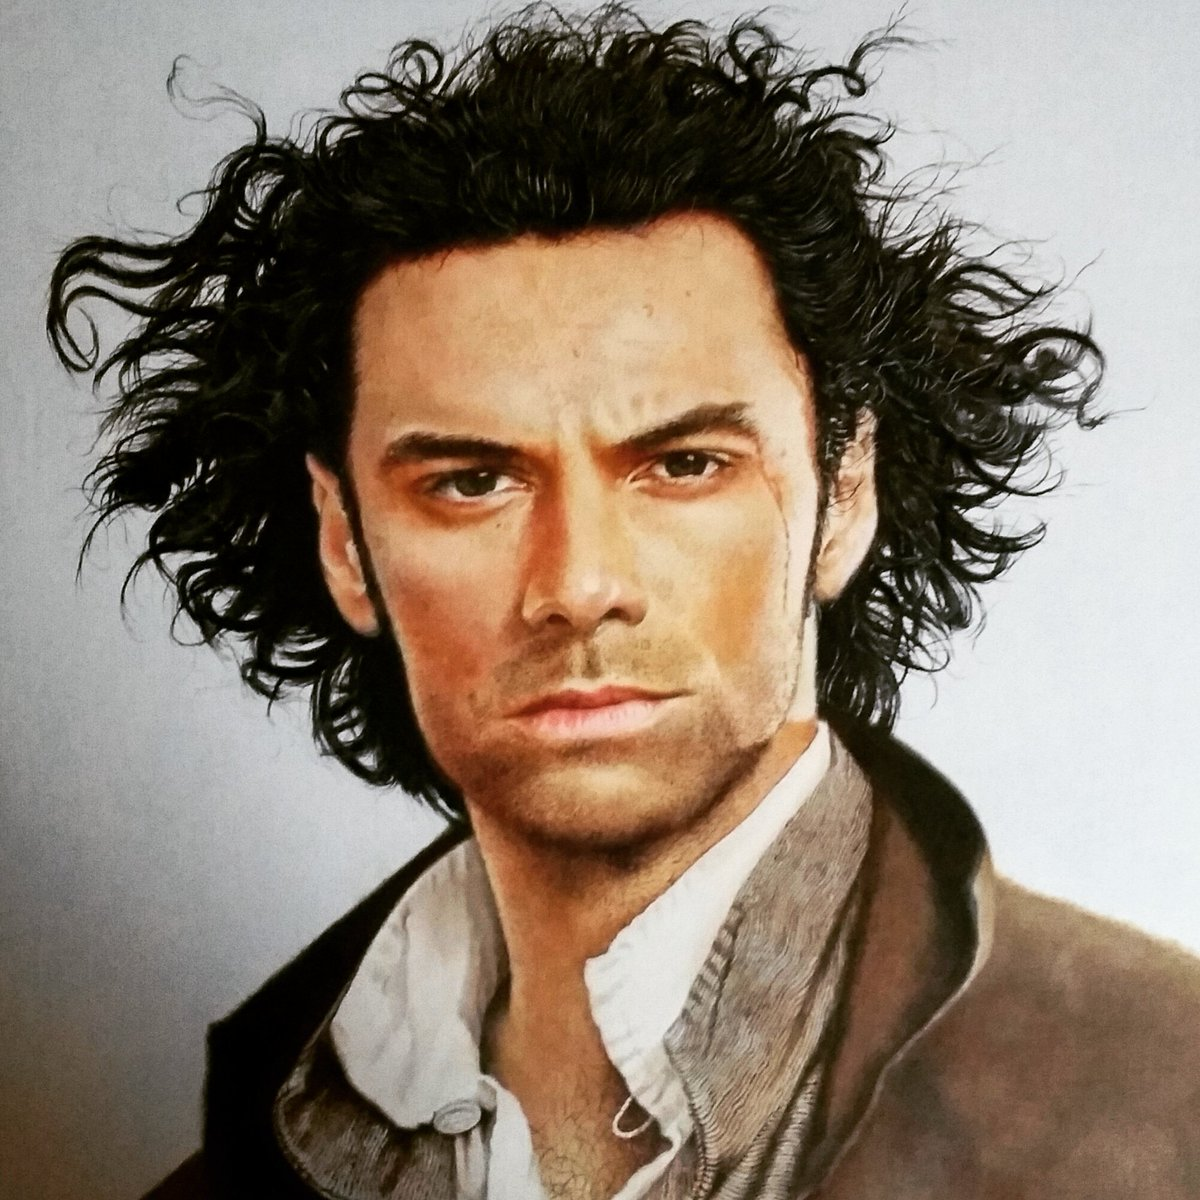 test Twitter Media - @NINightOwl My portrait of Aidan Turner as Poldark. Painted in oils on a wood panel. I emphasised his hair a little in this one. #portraits #artgallery #portraitpage #AidanTurner https://t.co/1bA4s5UlAr